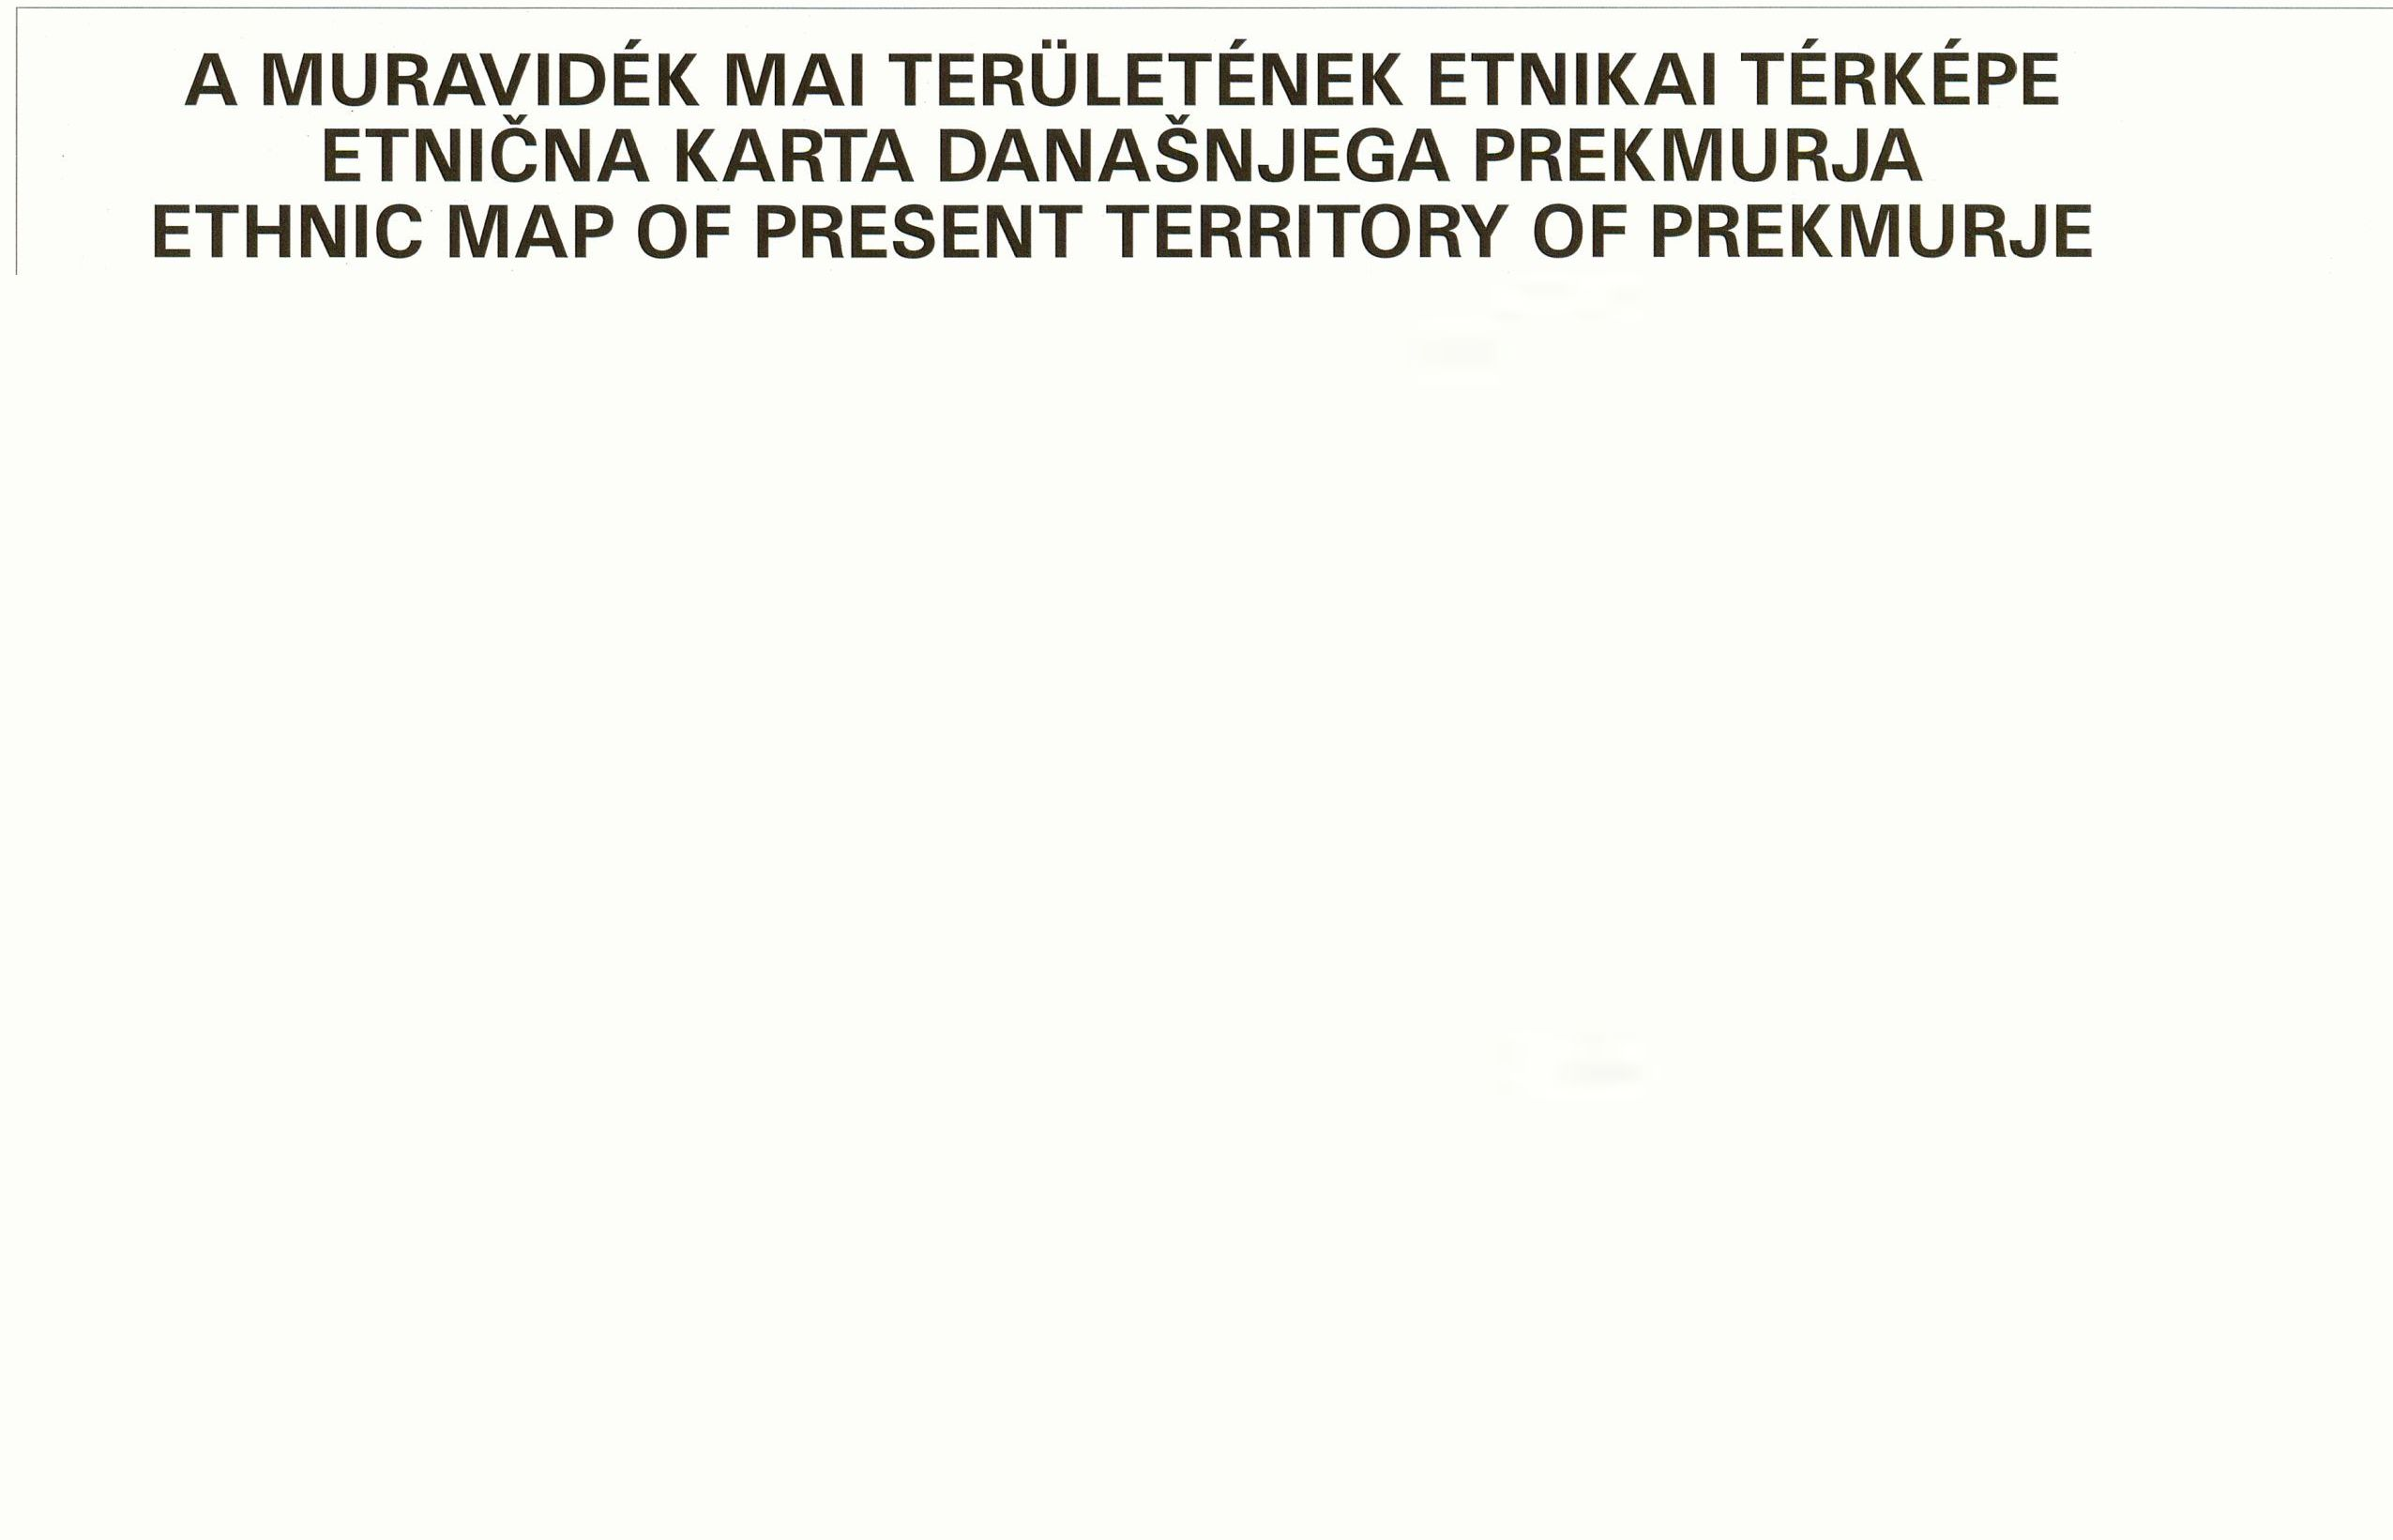 Ethnic map series of the Carpathian basin  Issue No 6 (Prekmurje) 2005